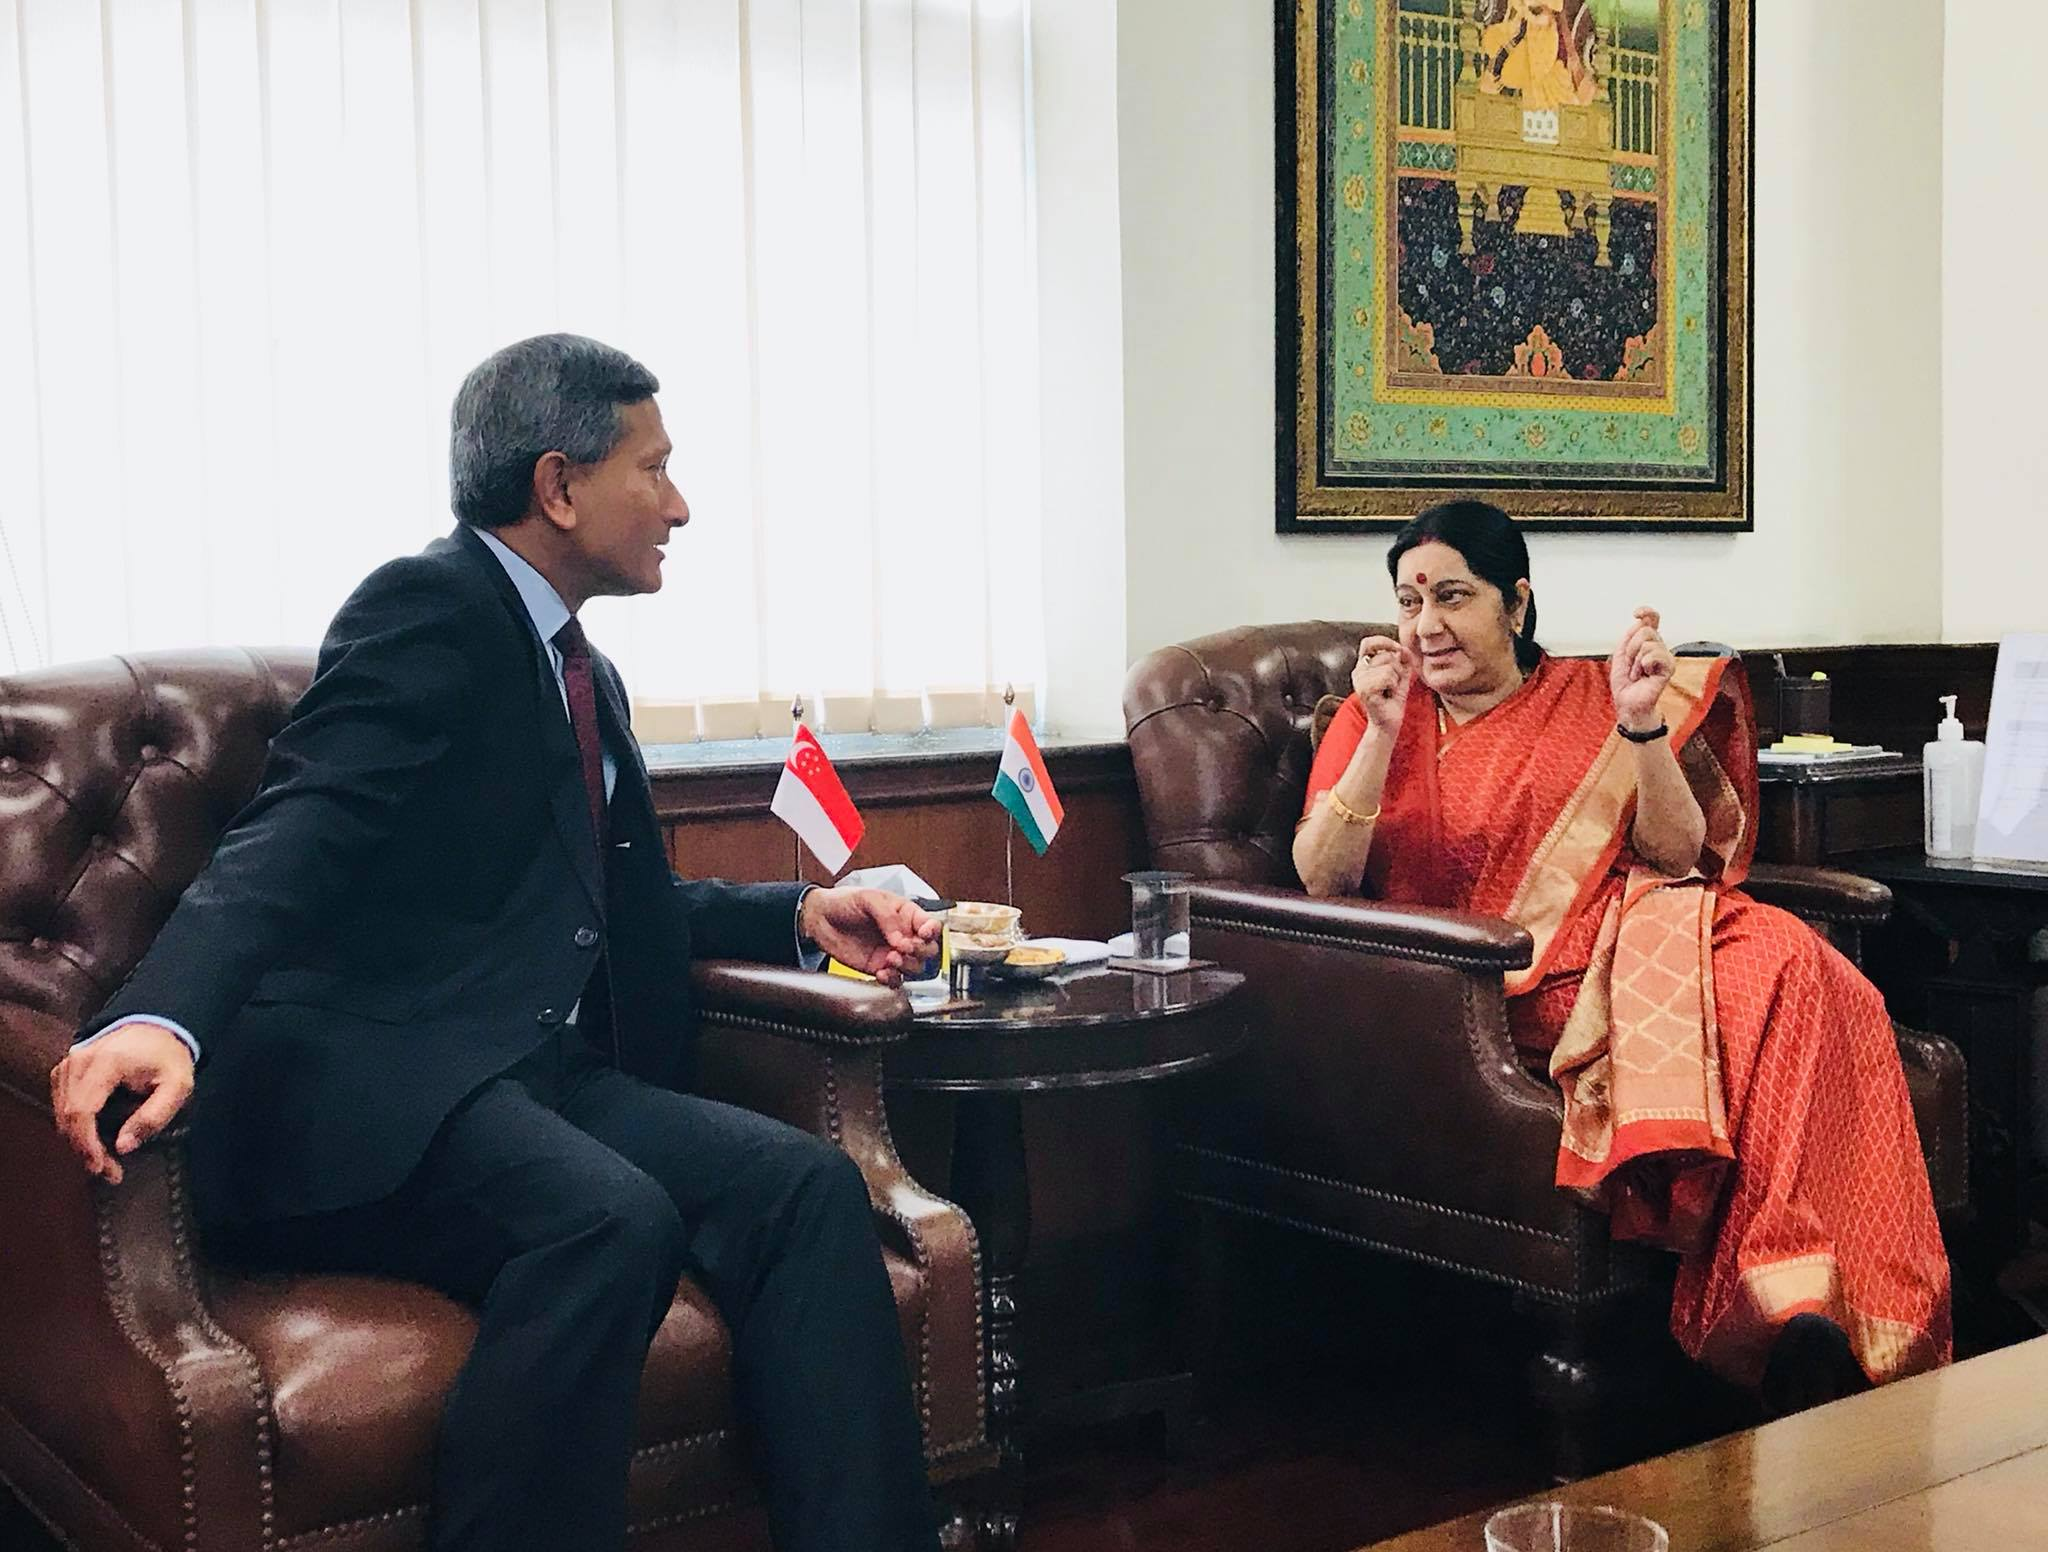 Singapore Minister for Foreign Affairs Dr Vivian Balakrishnan (left) with Indian External Affairs Minister Sushma Swaraj in New Delhi. The EAM will share with her interlocutors relevant information about the forthcoming ASEAN-India Commemorative Summit during her upcoming visit.